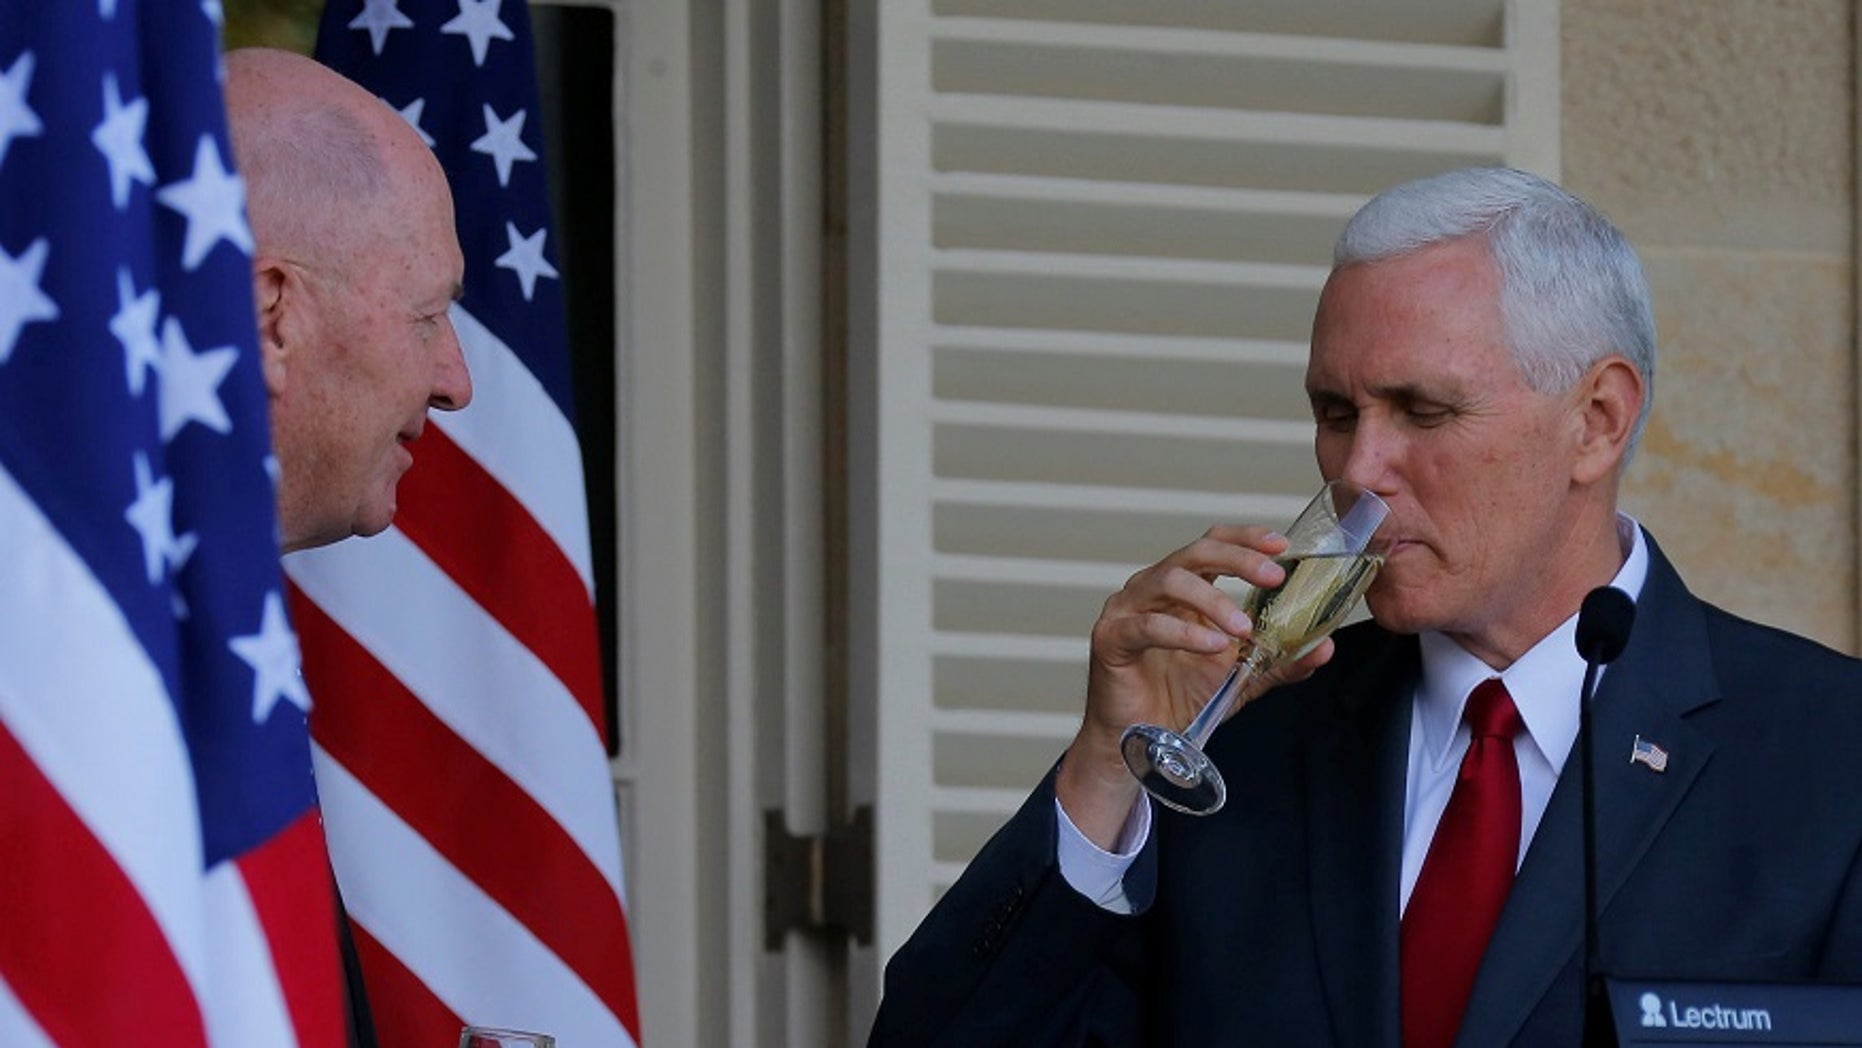 Vice President Mike Pence reportedly tattled on his fraternity brothers for hiding kegs.